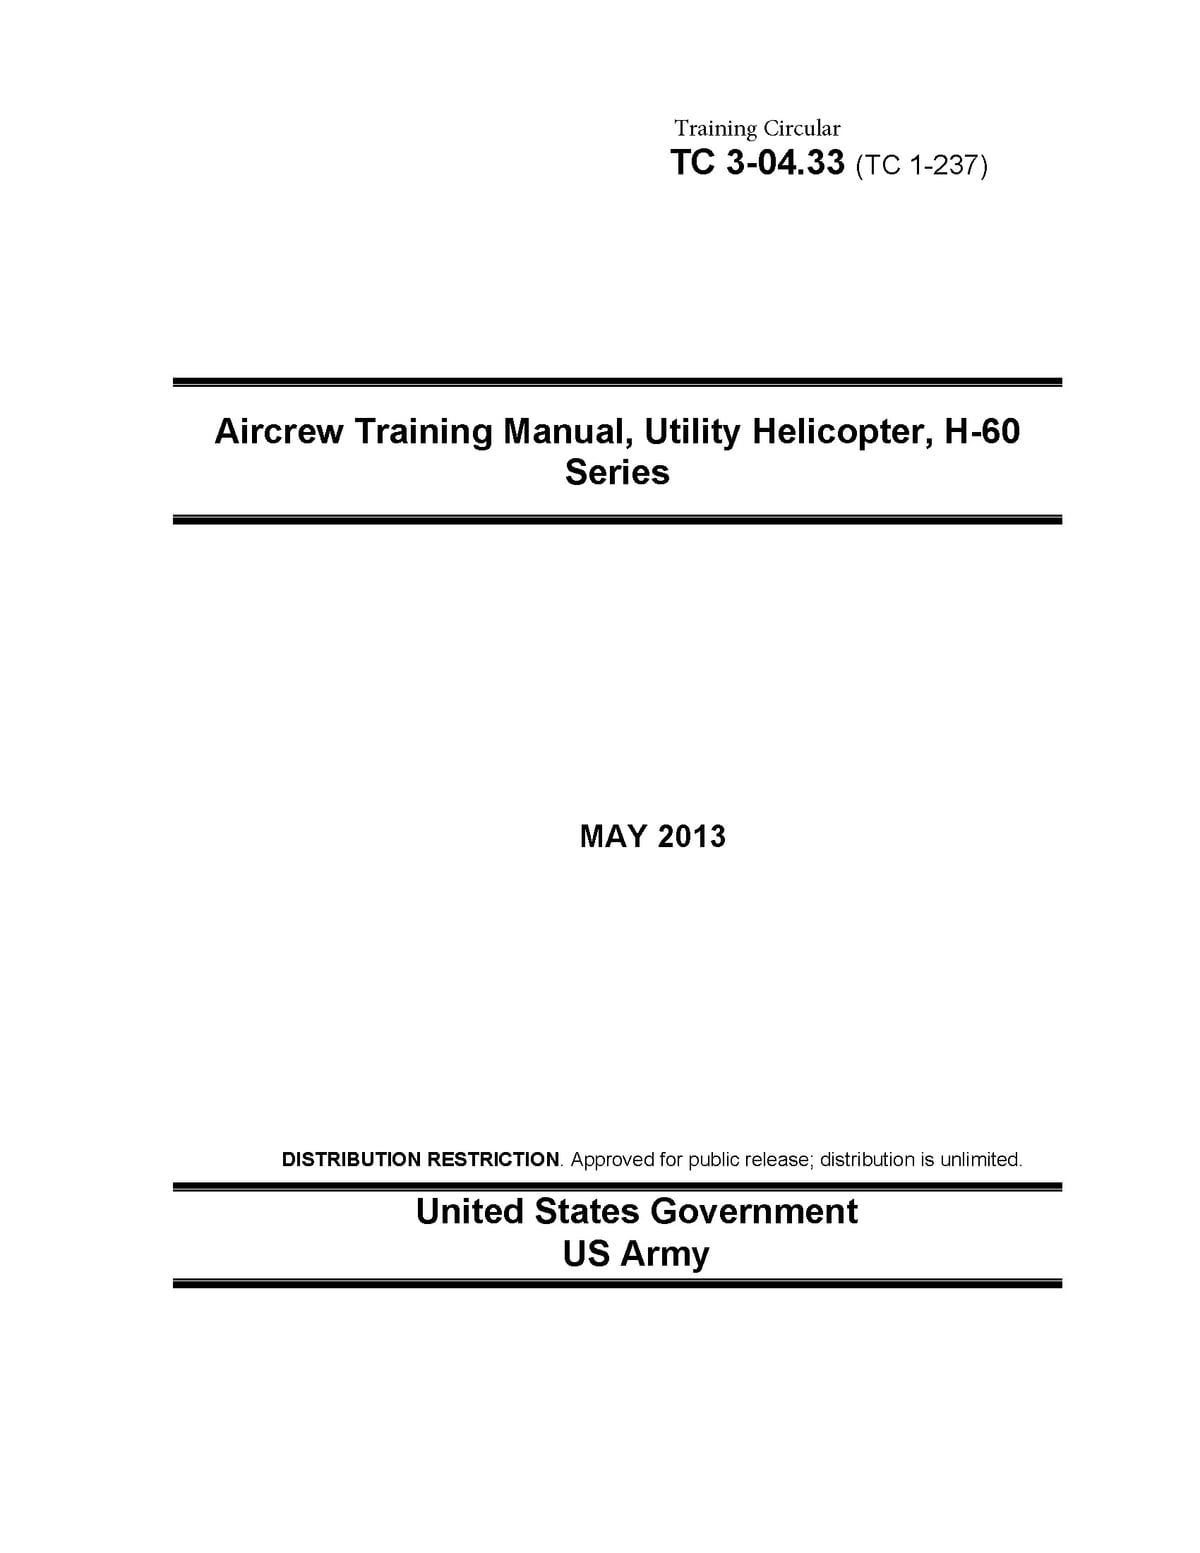 Training Circular TC 3-04.33 (TC 1-237) Aircrew Training Manual, Utility  Helicopter, H-60 Series May 2013 eBook by United States Government US Army  ...